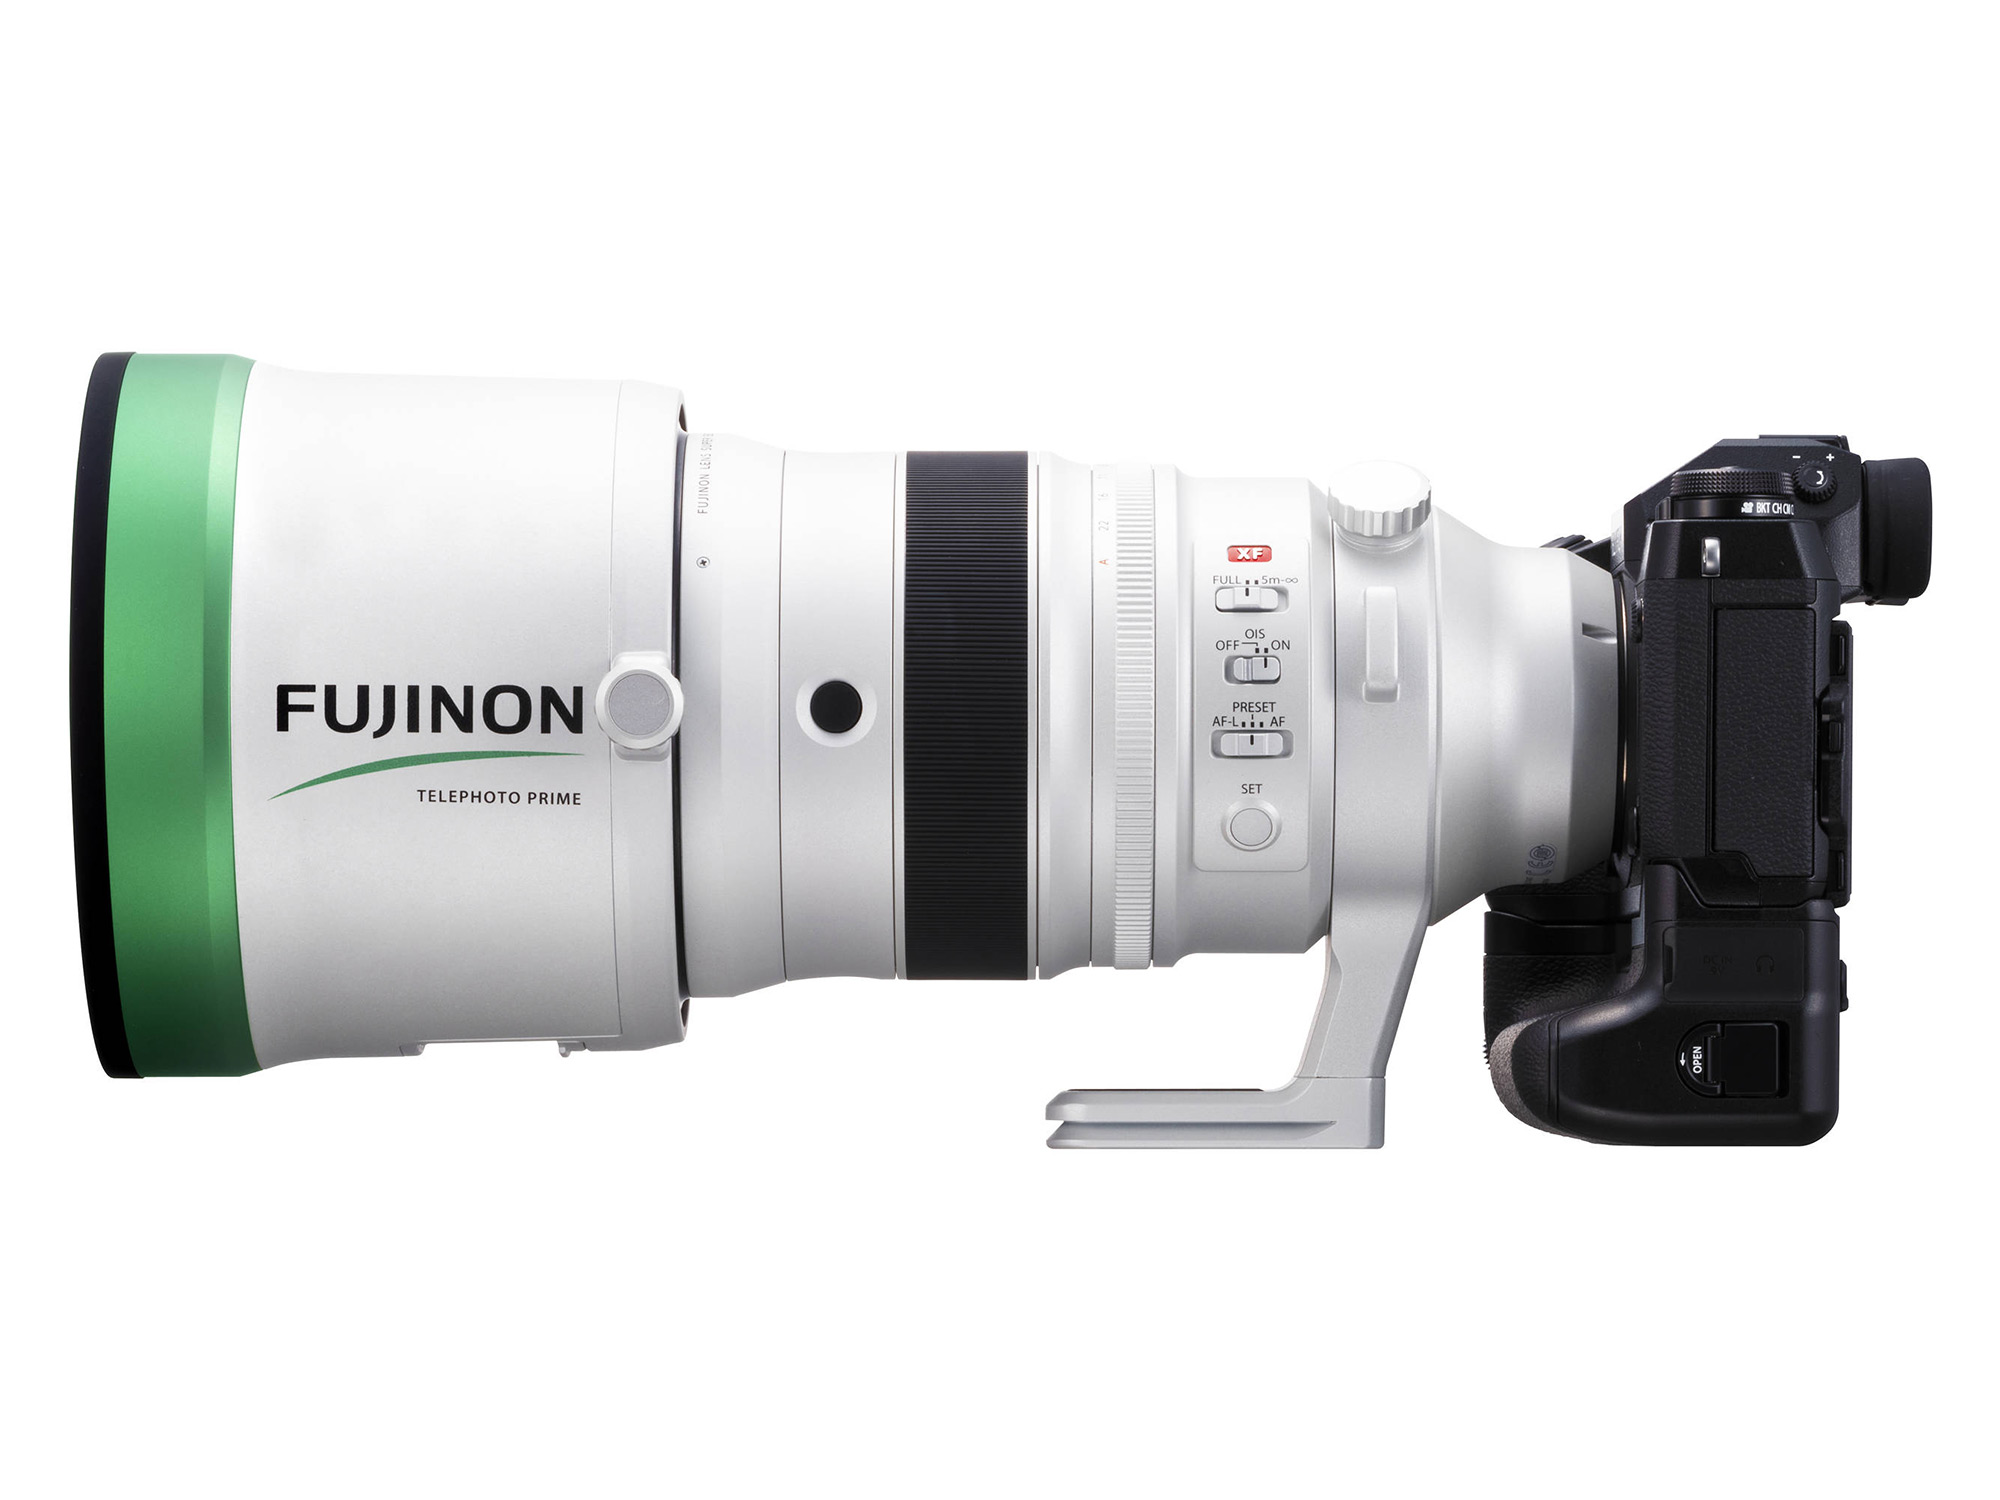 Fujifilm XF 200mm f/2 OIS WR Lens with XF 1.4x TC F2 WR Teleconverter Kit